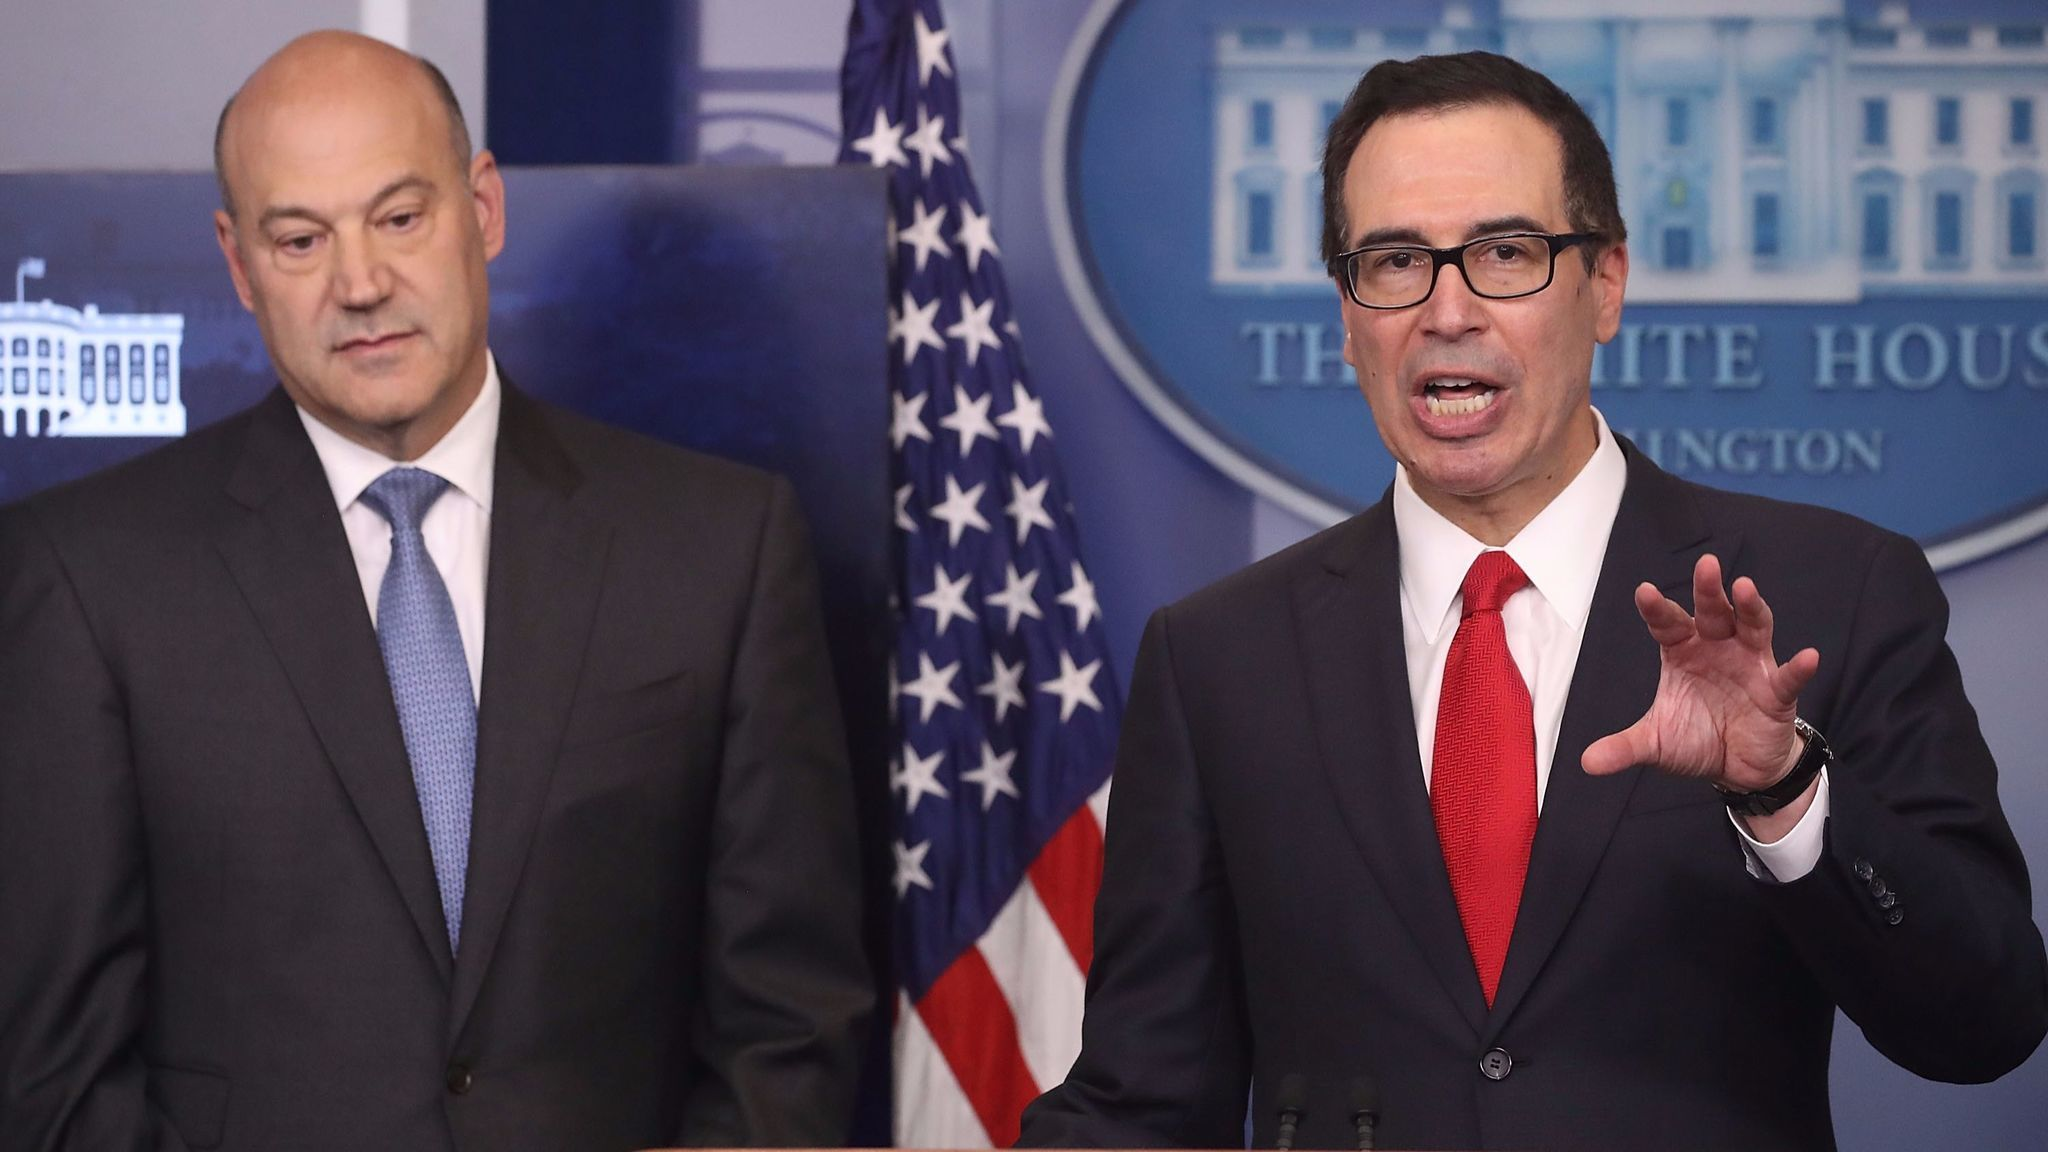 Gary Cohn, director of the White House National Economic Council, left, and Treasury Secretary Steven T. Mnuchin speak to reporters about President Trump's tax plan on Wednesday at the White House.